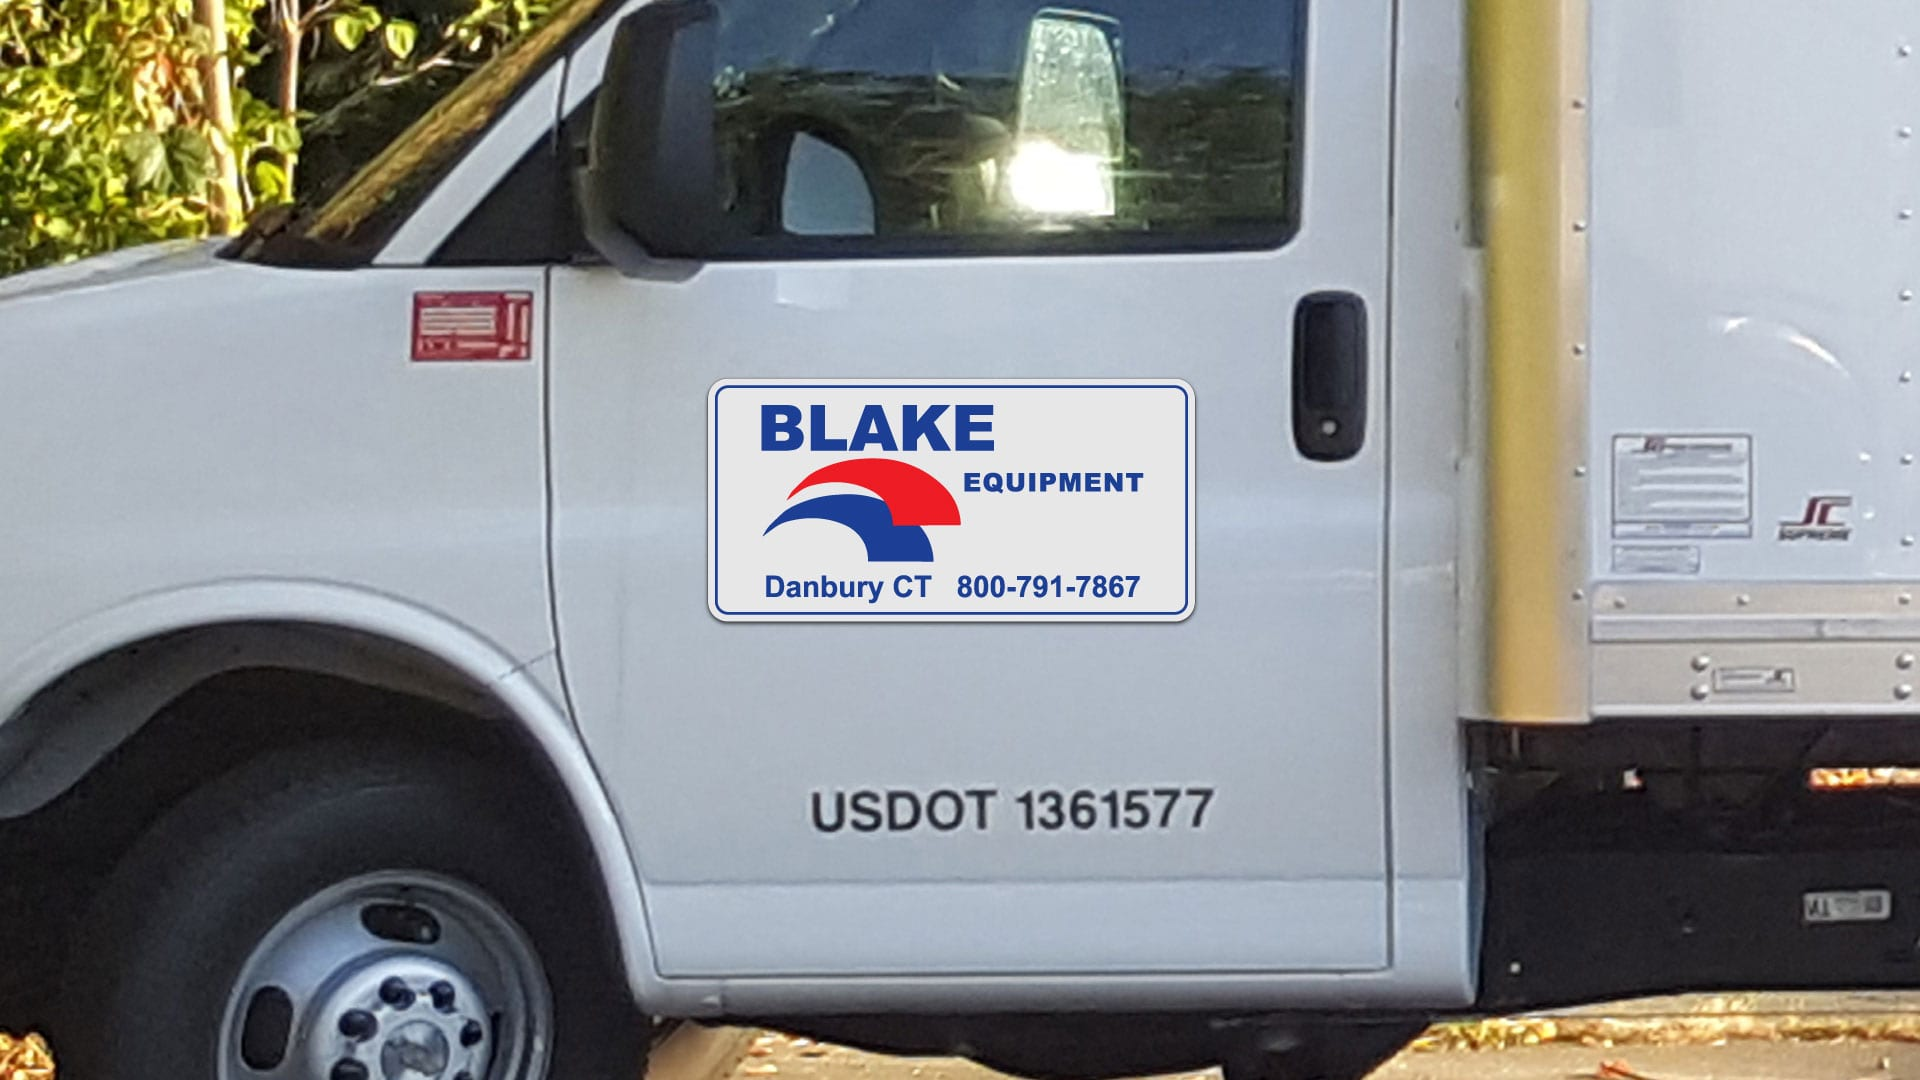 Custom car magnet for Blake Equipment